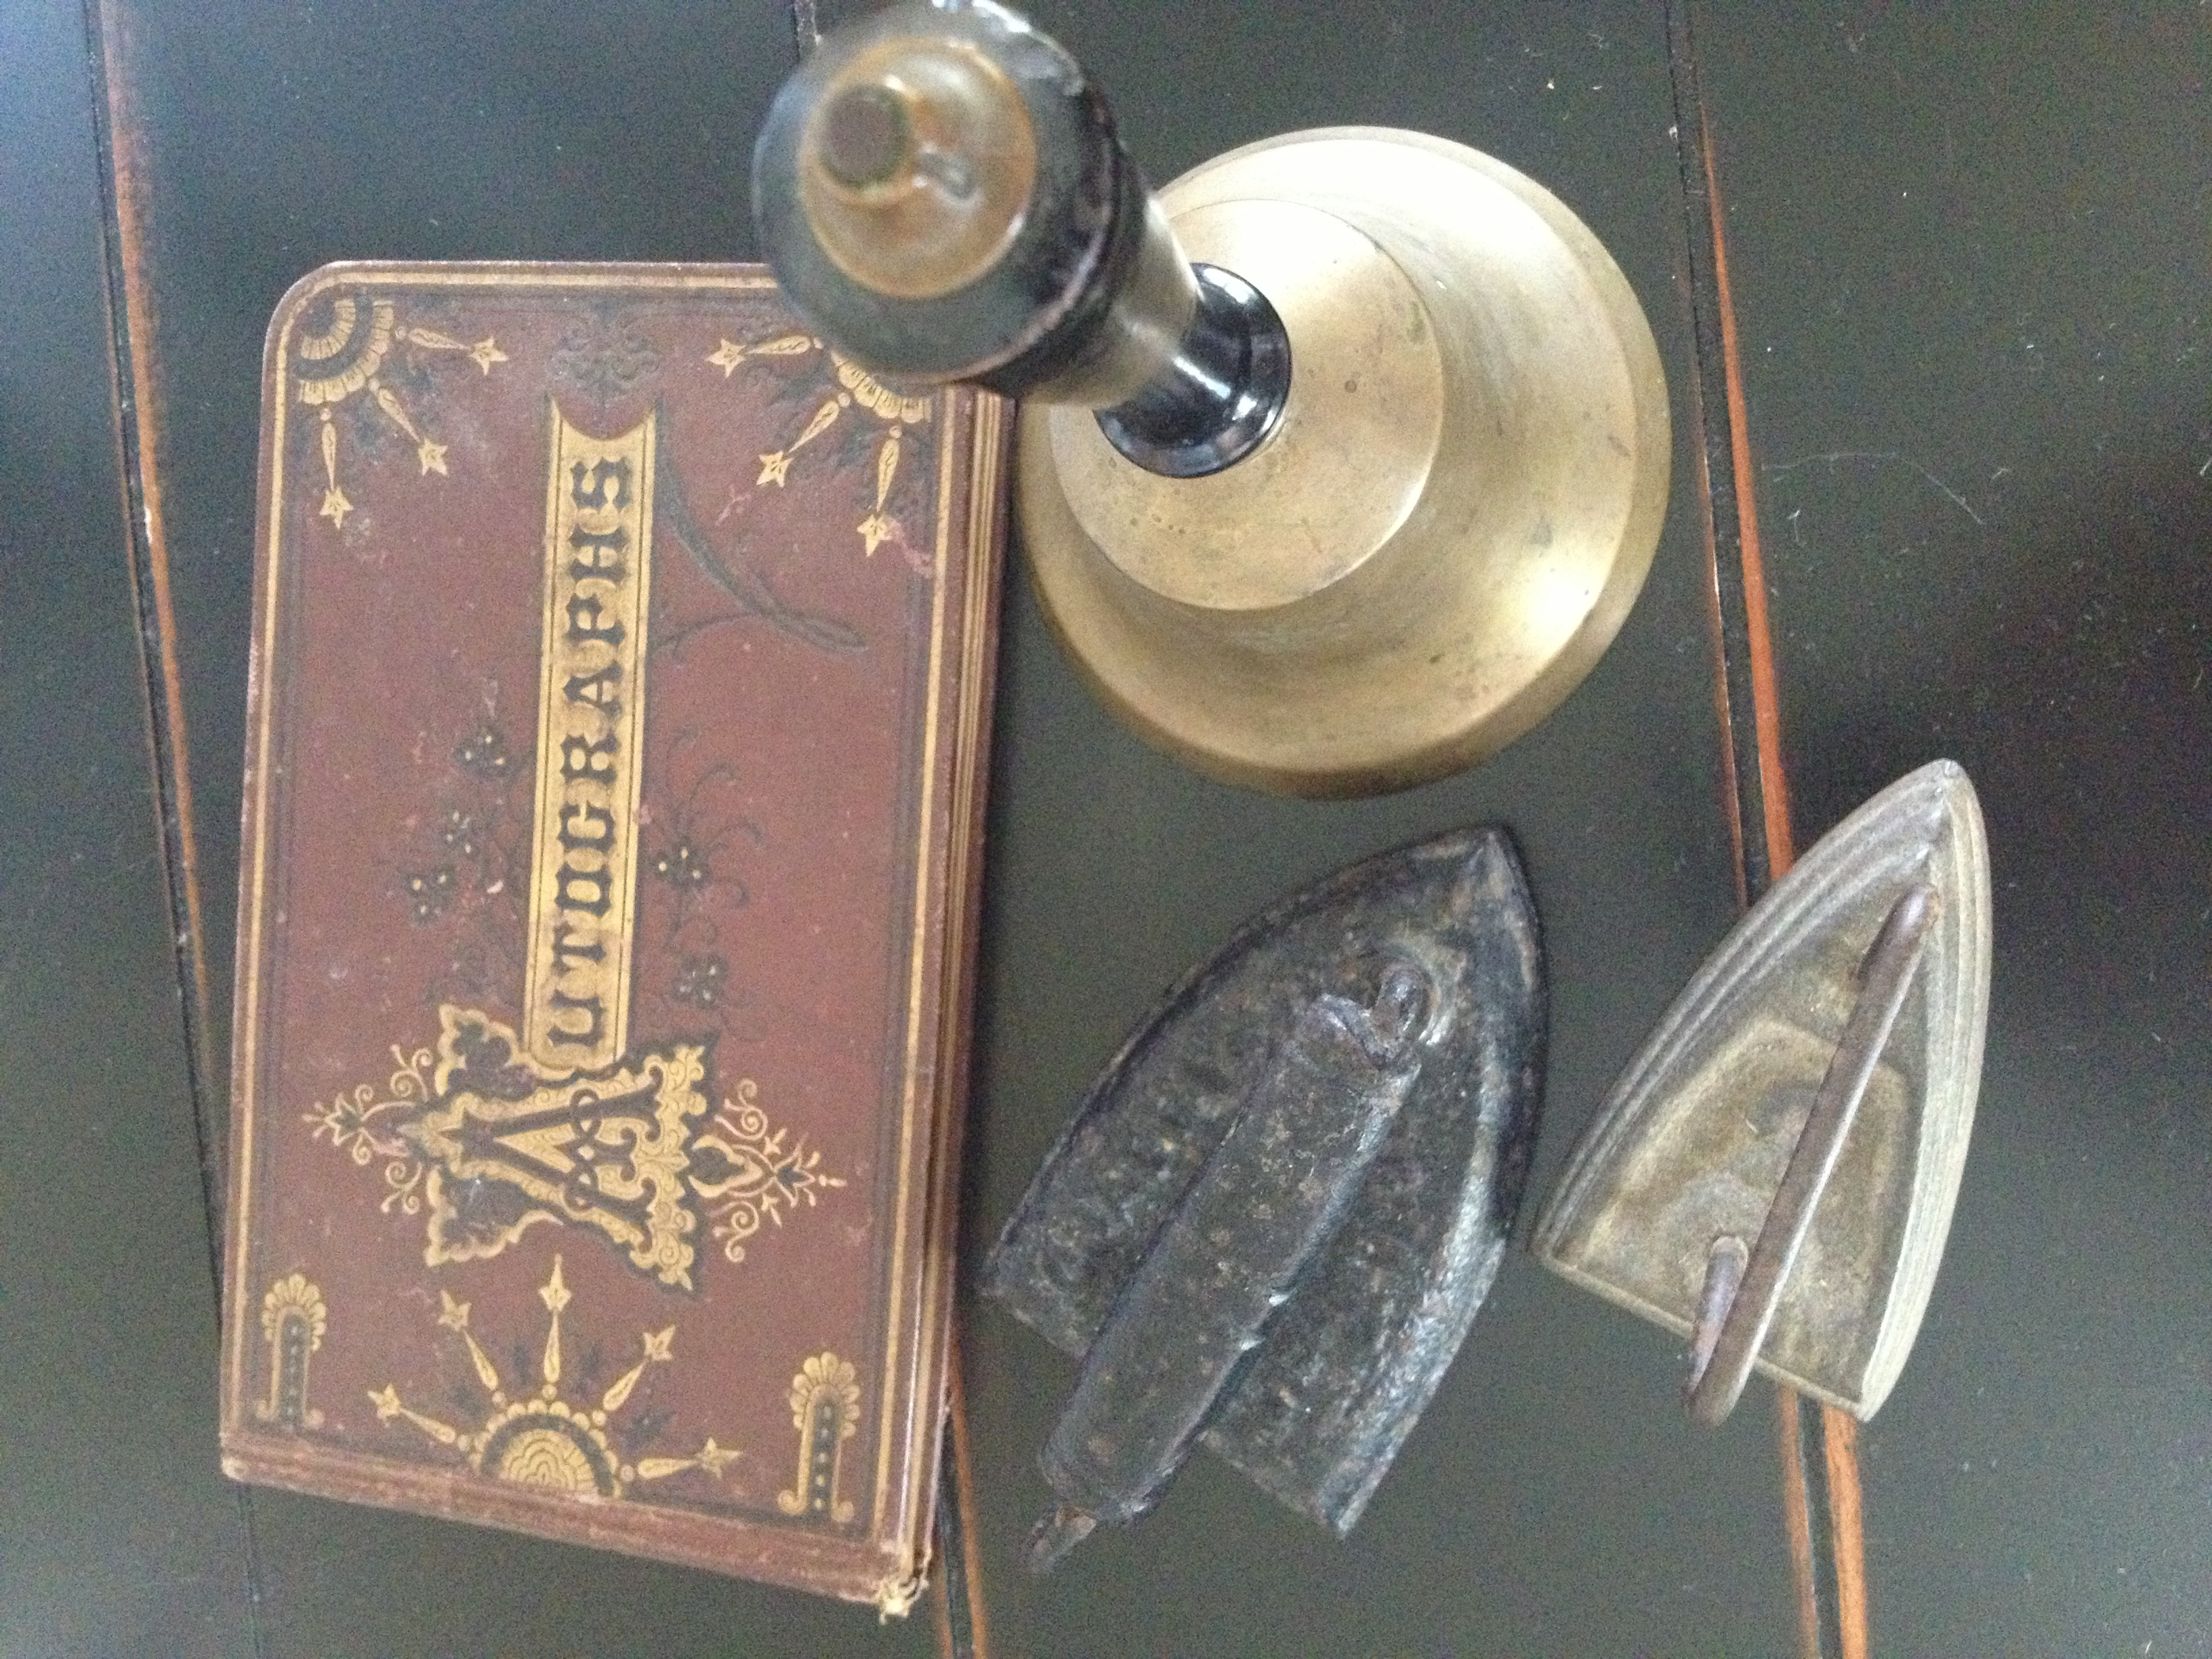 Antiques: an autograph book, a bell, and two irons.